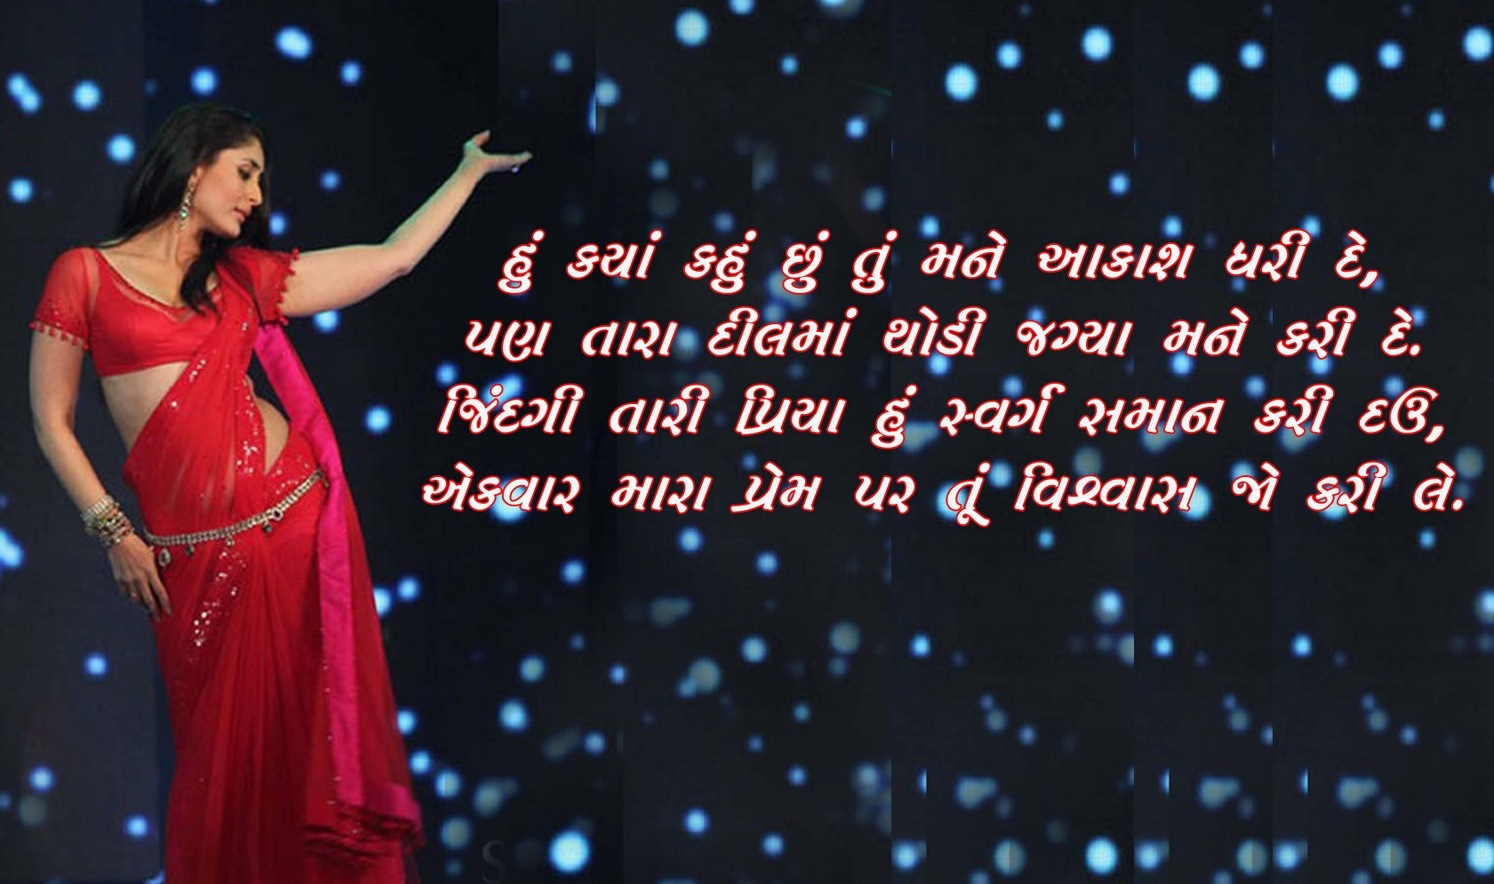 Bewafa Gujarati Shayari Quotes Love Pictures Www Picturesboss Com